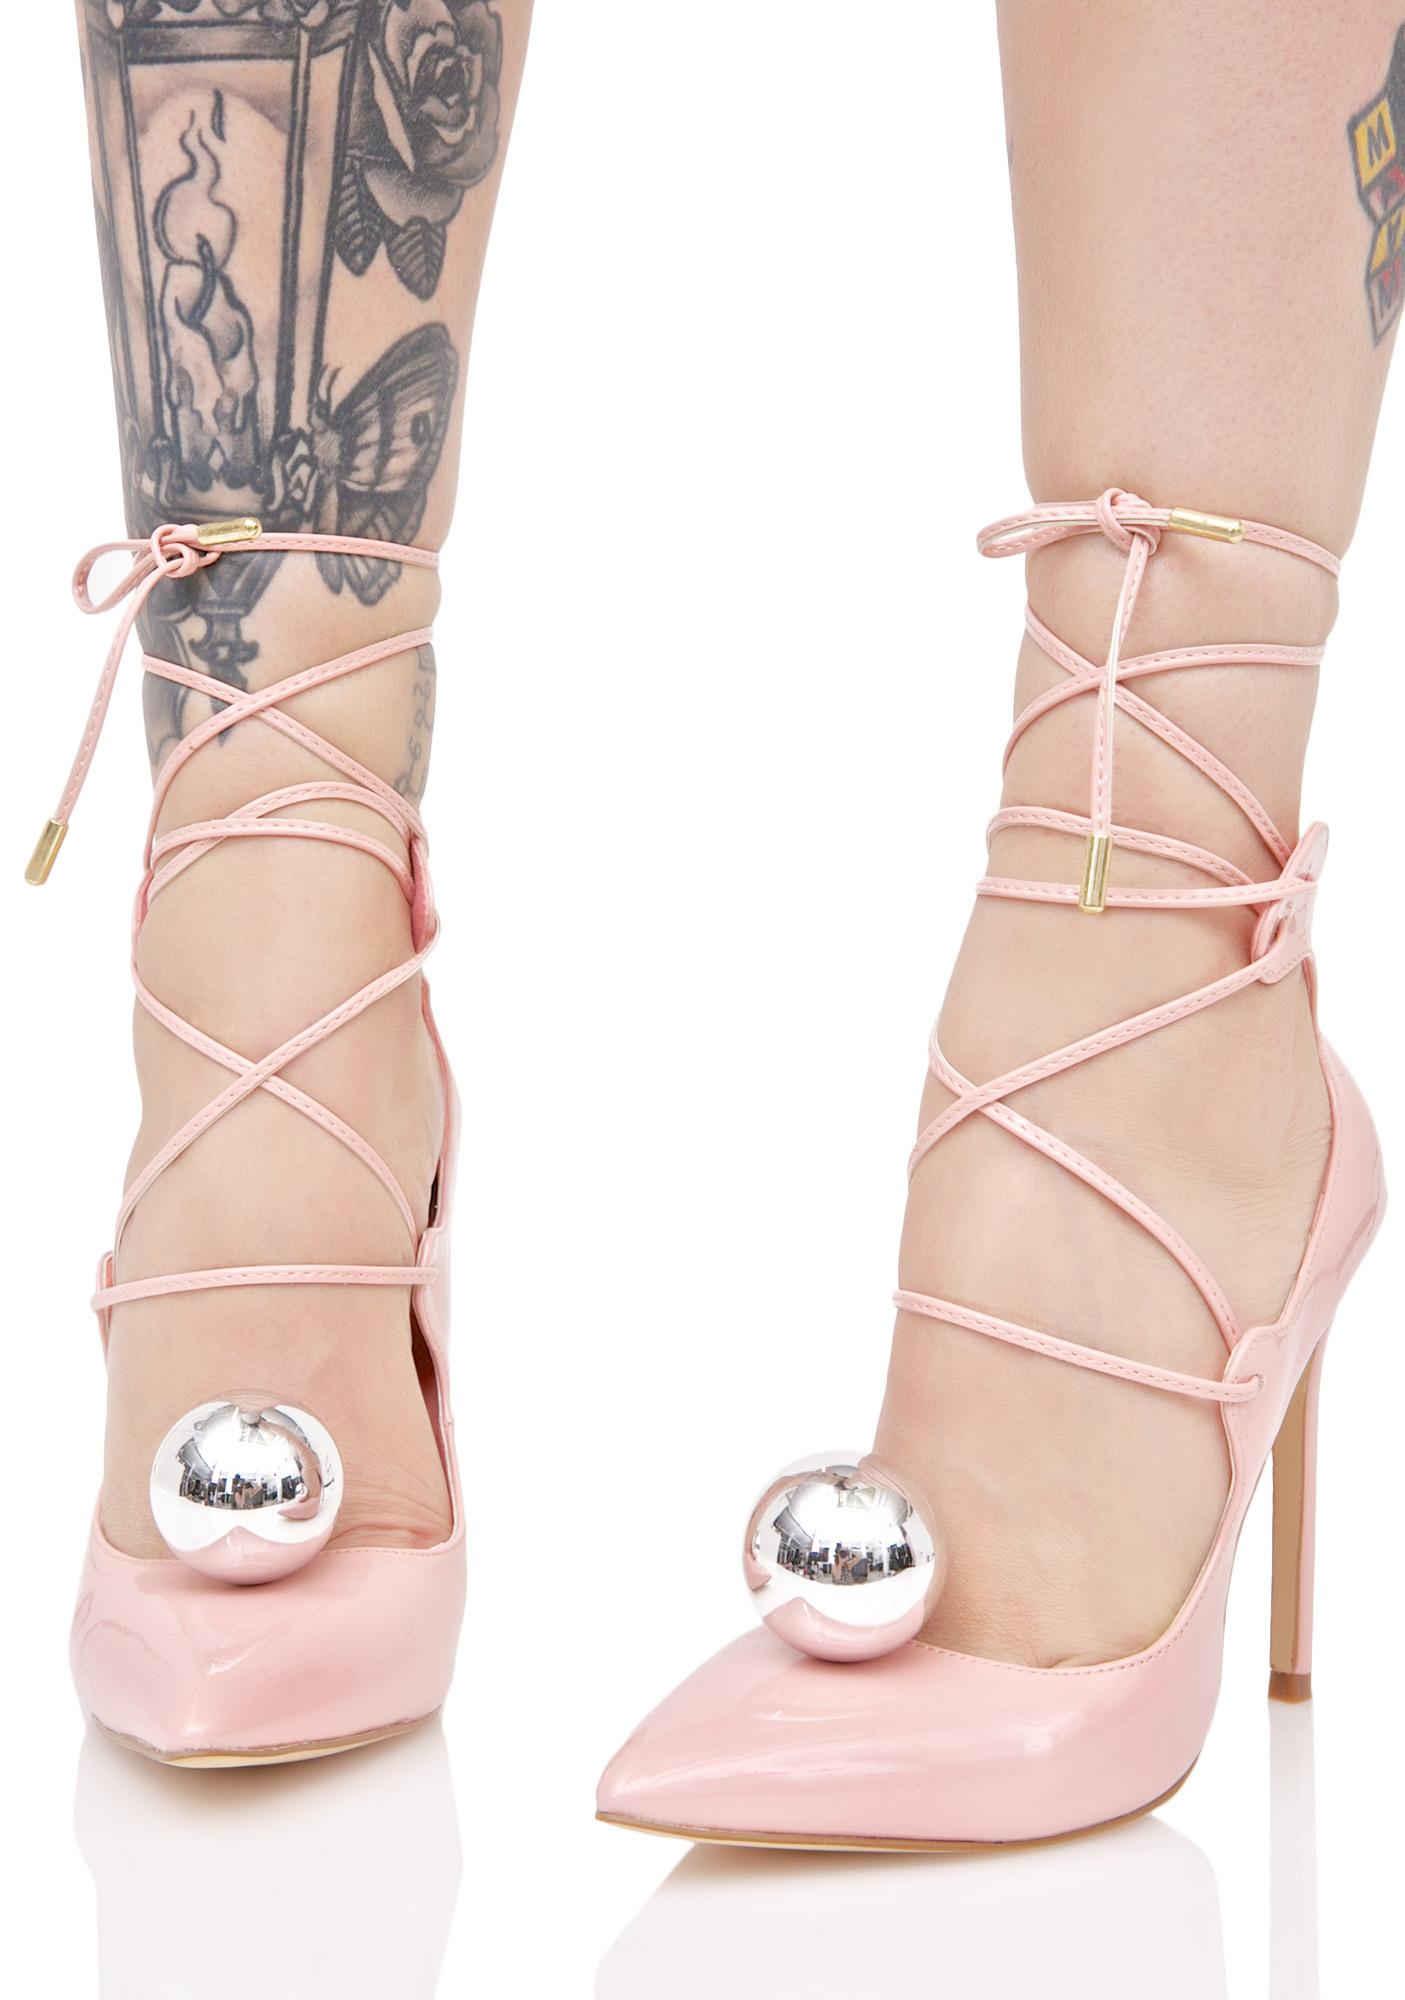 Privileged Vida Lace-Up Heels